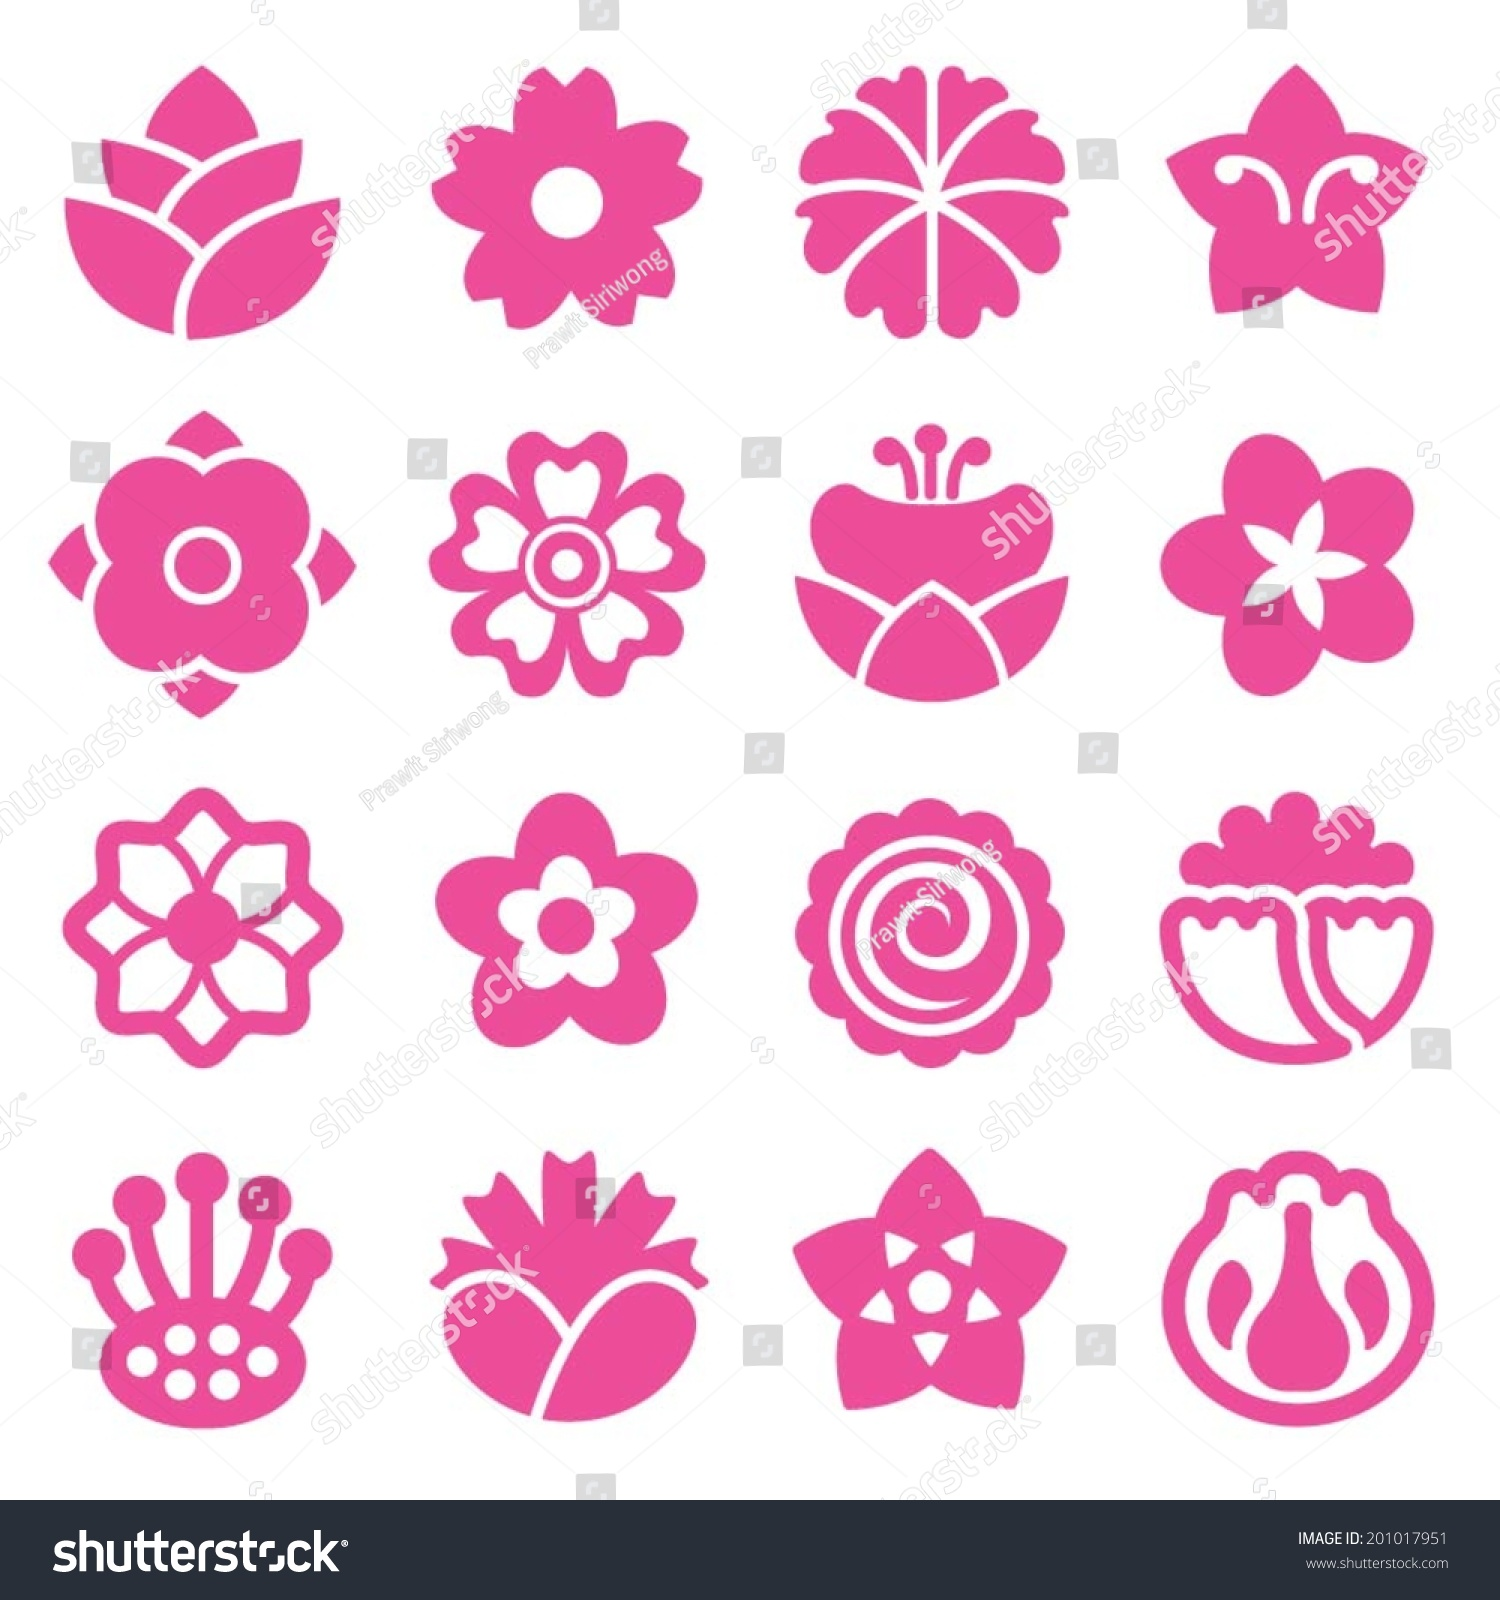 Flower icon pink stock vector 201017951 shutterstock flower icon pink dhlflorist Images